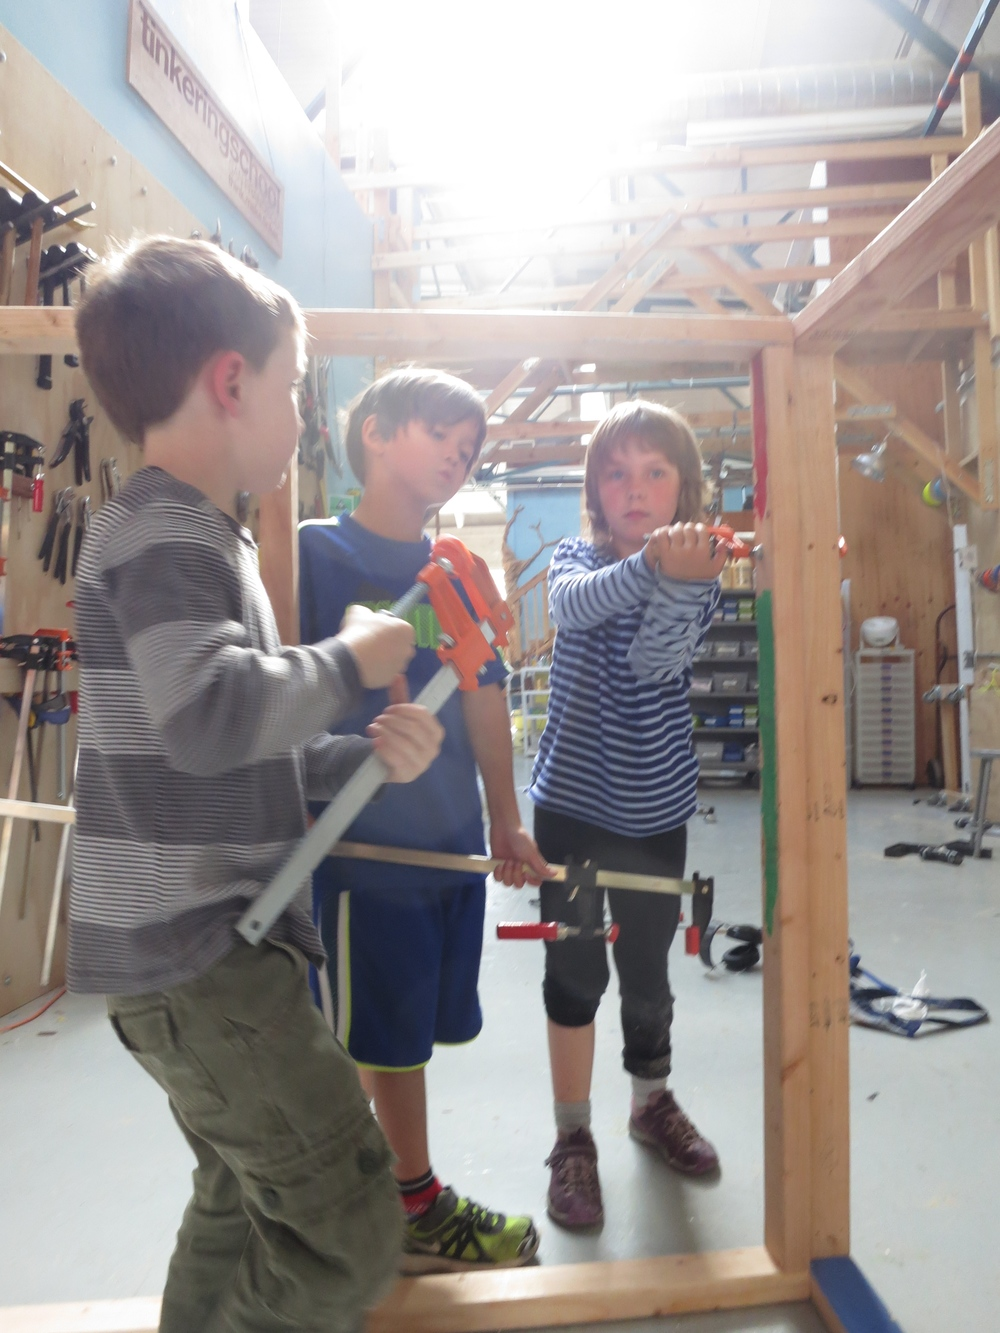 Evan, Dash and Scarlett clamp two walls together.